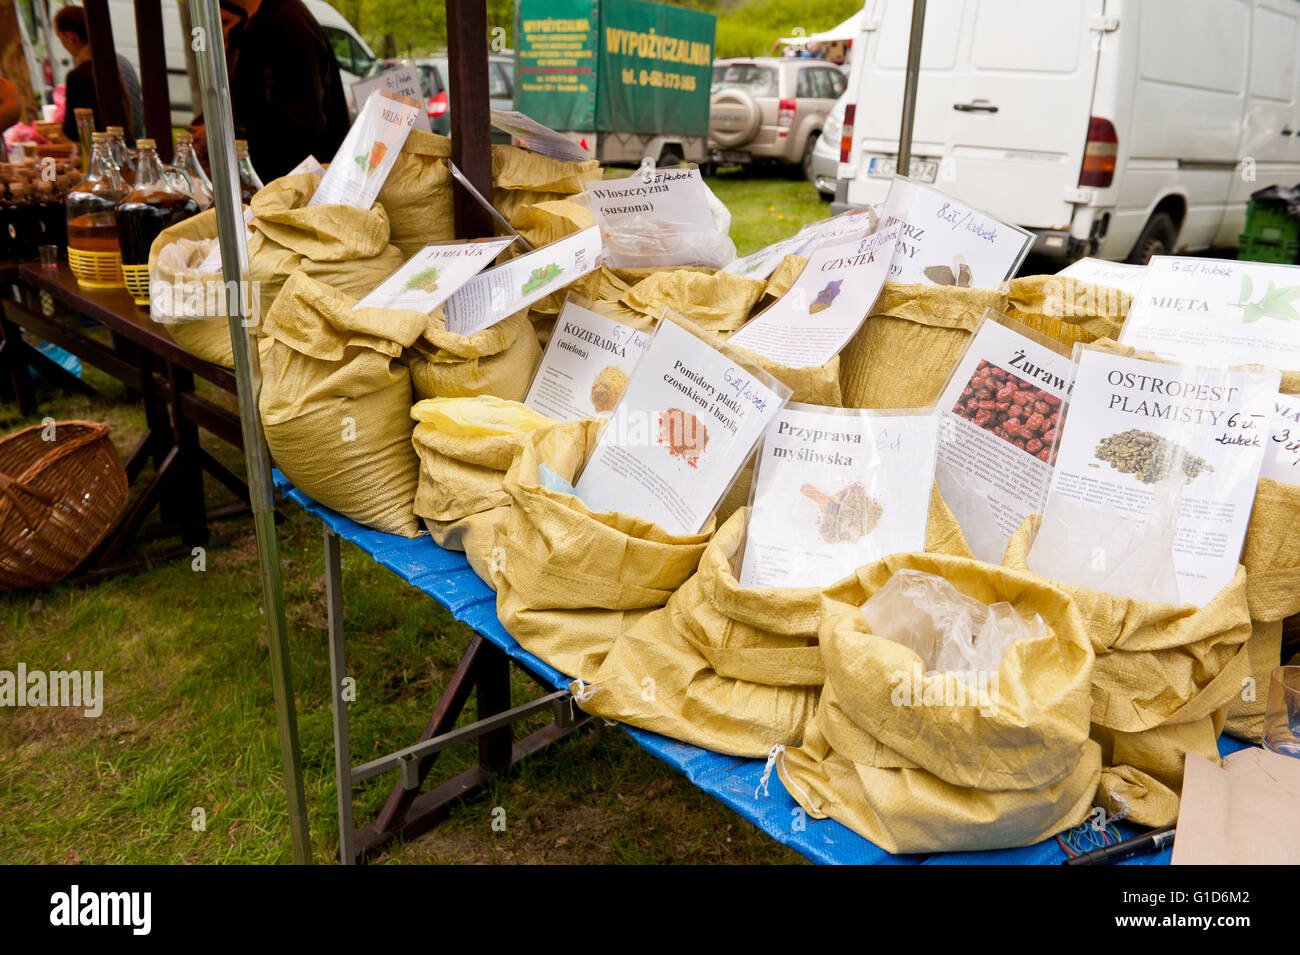 Spices in bags at food fair at May day picnic in Janowiec Castle in Poland, Europe, leisure during Swedes invasion - Stock Image